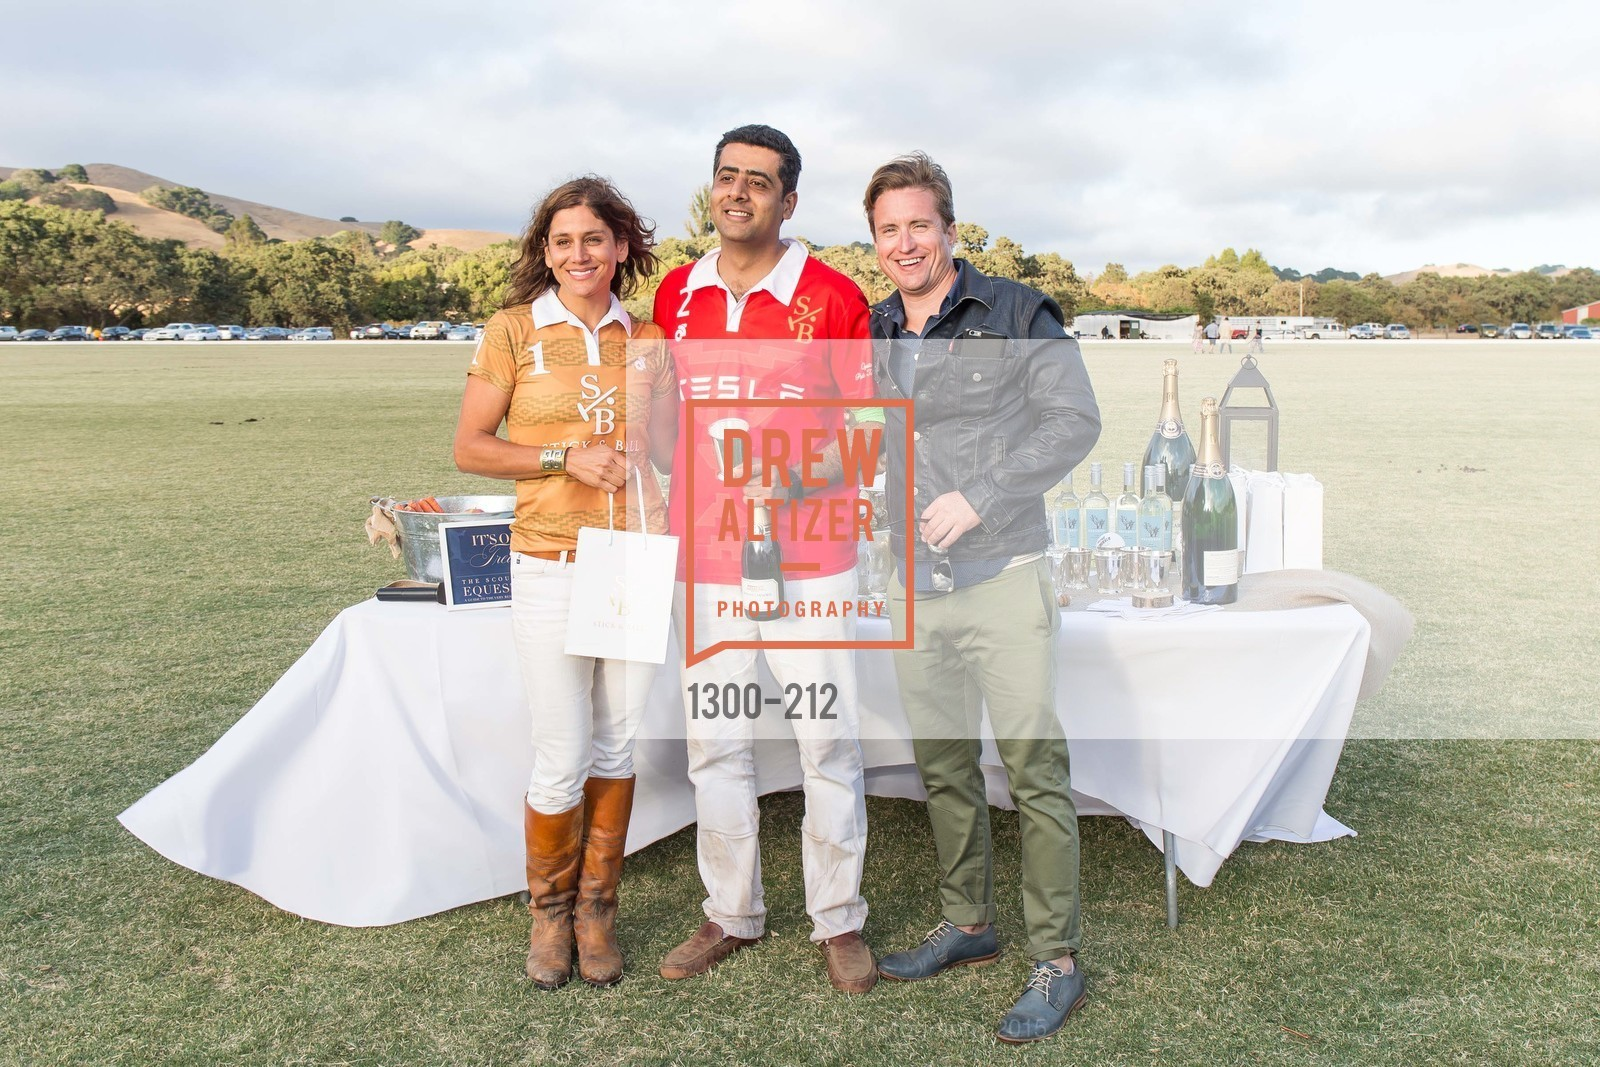 Elizabeth Welborn, Hassan Khan, Benjamin Rotnicki, Stick & Ball Oyster Cup Polo Tournament, Cerro Pampa Polo Club, July 25th, 2015,Drew Altizer, Drew Altizer Photography, full-service agency, private events, San Francisco photographer, photographer california